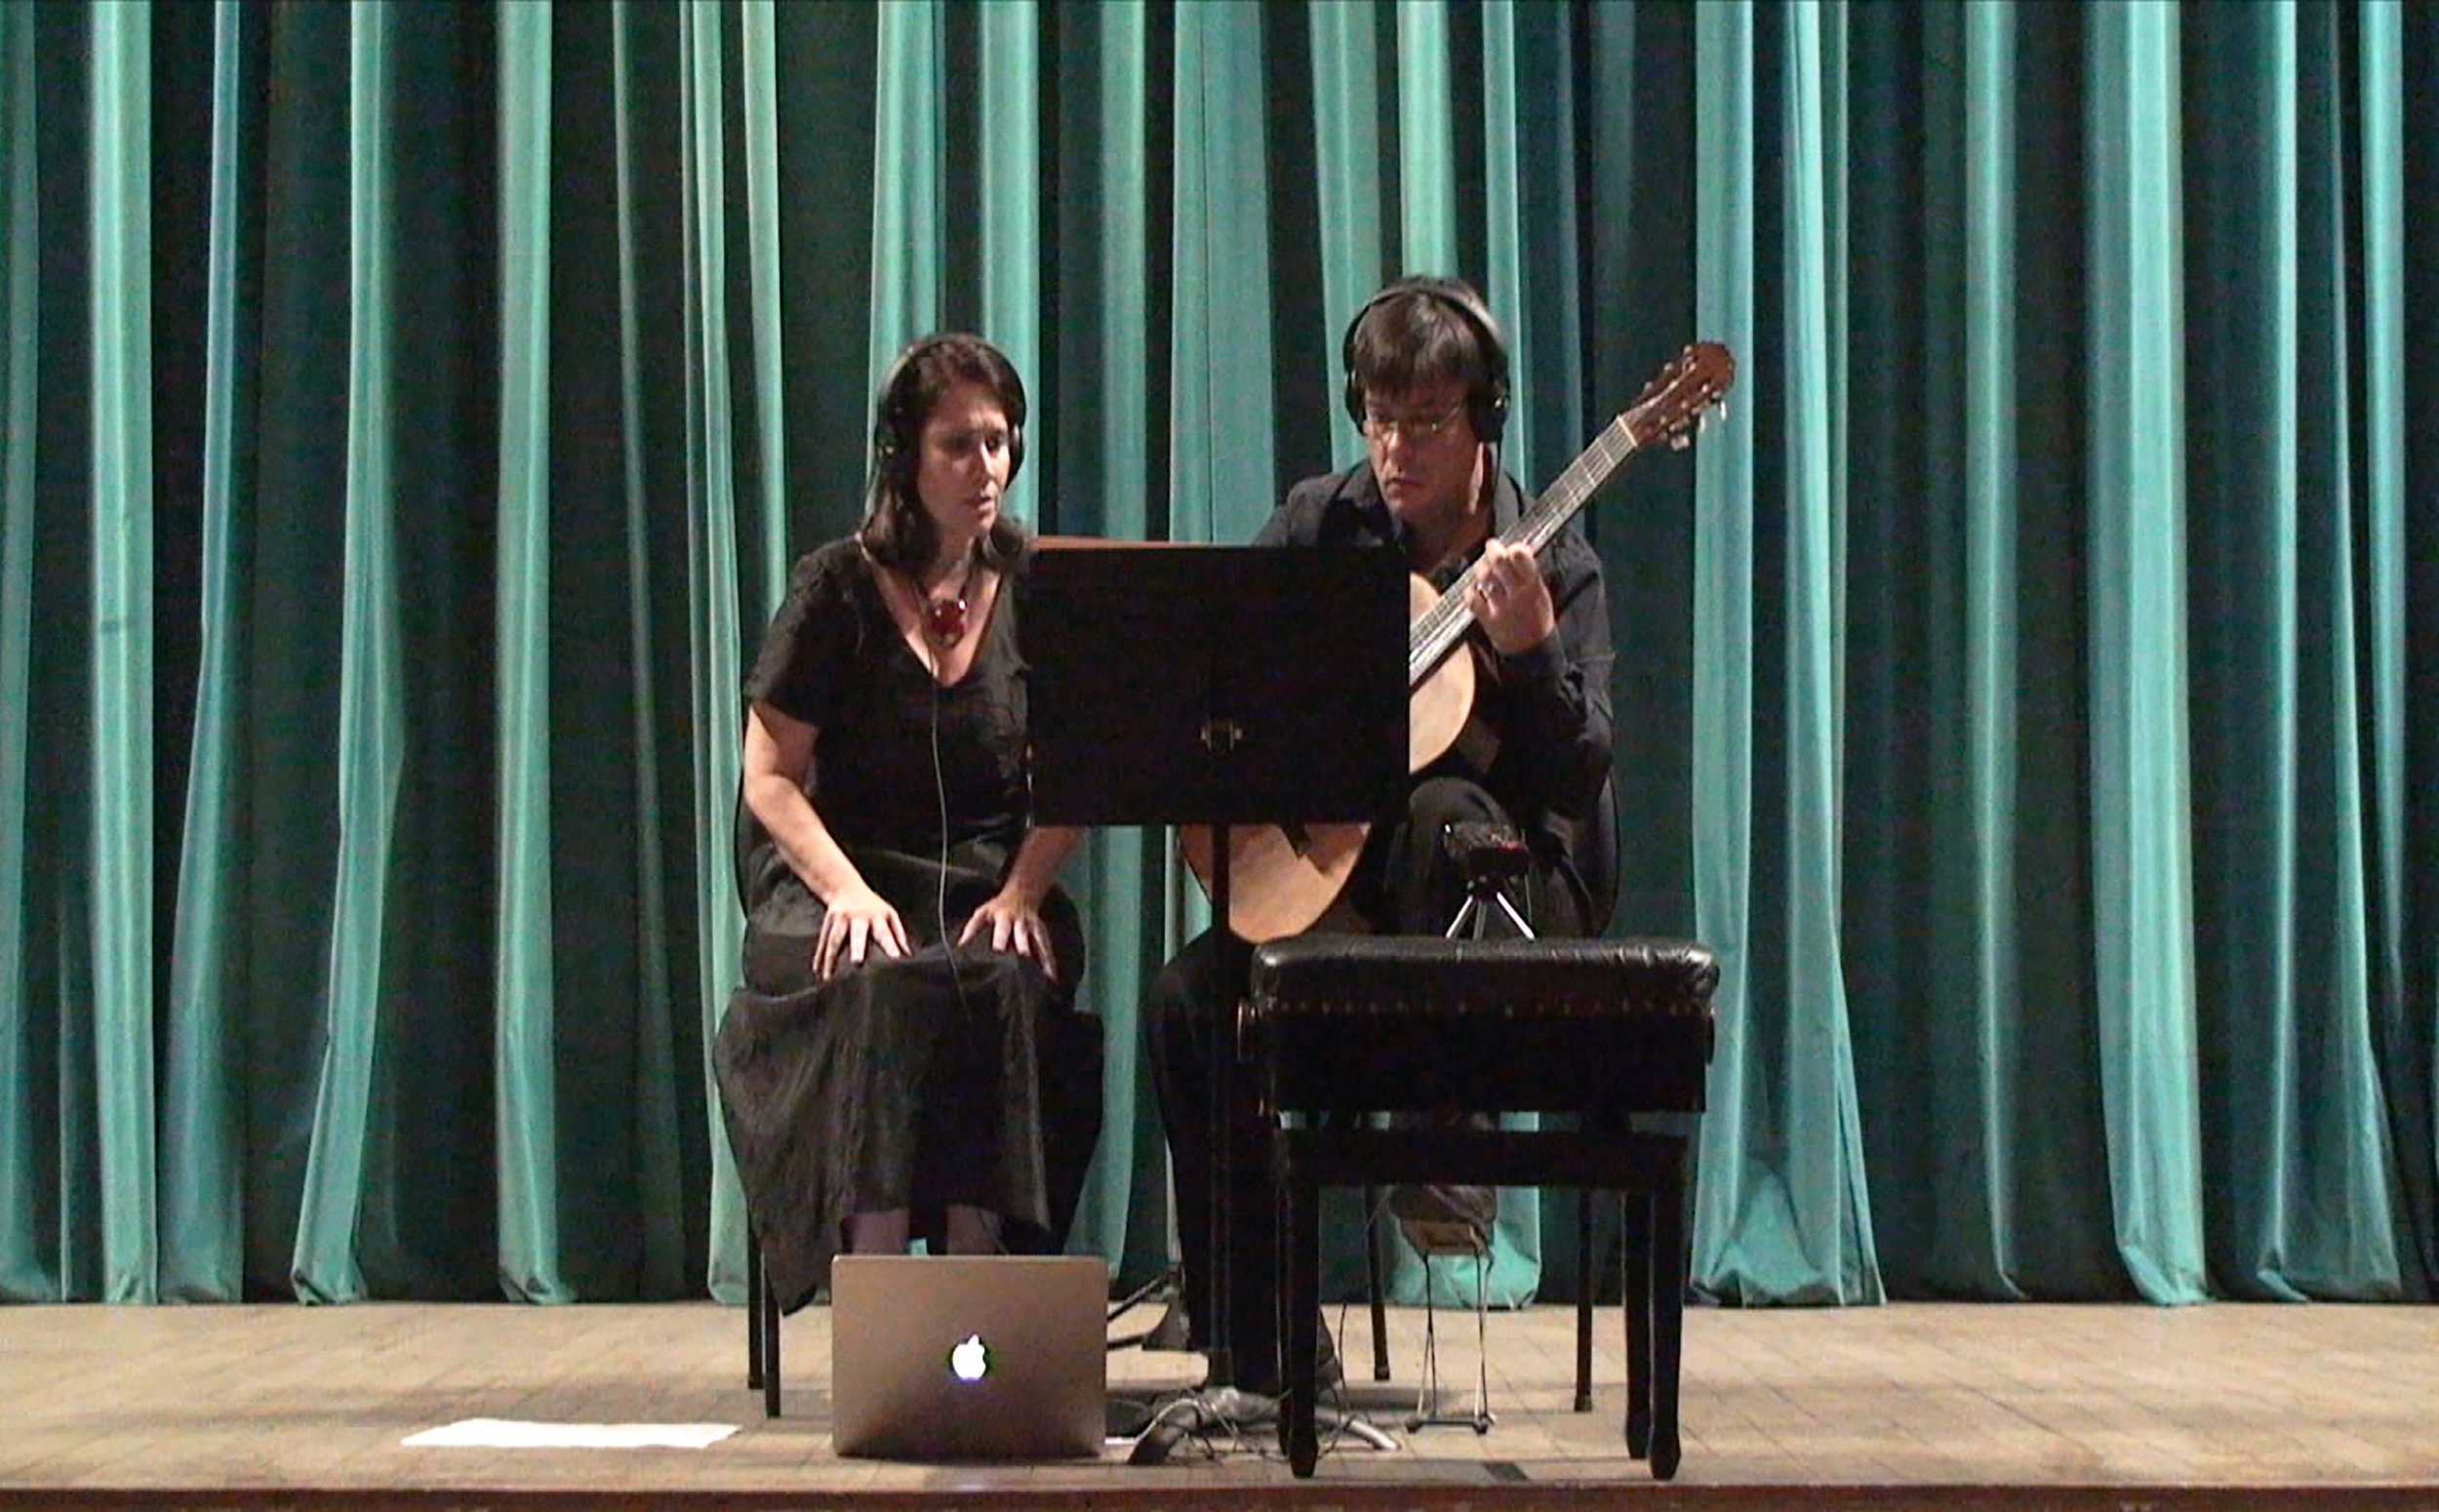 Duo Adour  [soprano Andréa Adour and guitarist Fabio Adour] School of Music of the Federal University of Rio de Janeiro, Salão Leopoldo Miguez, Rio de Janeiro, Brazil.   Day 1   recording session, September 2017.